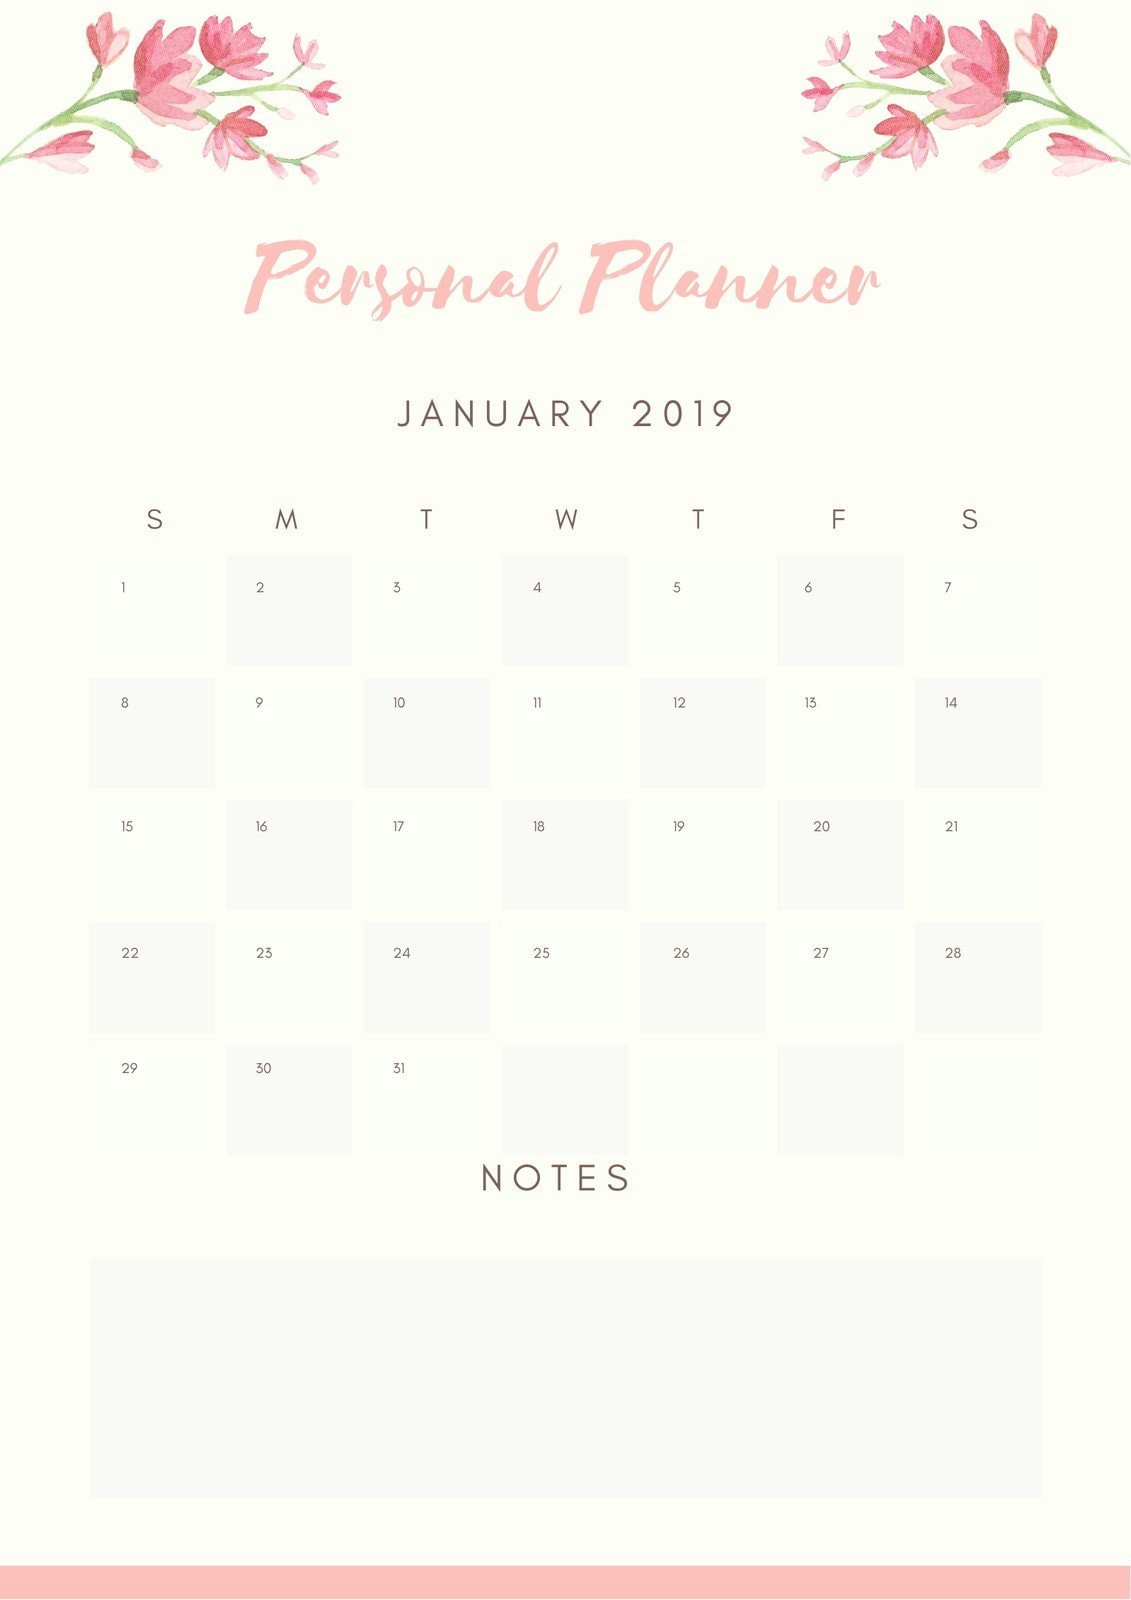 Pastel Pink Floral Border Personal Planner